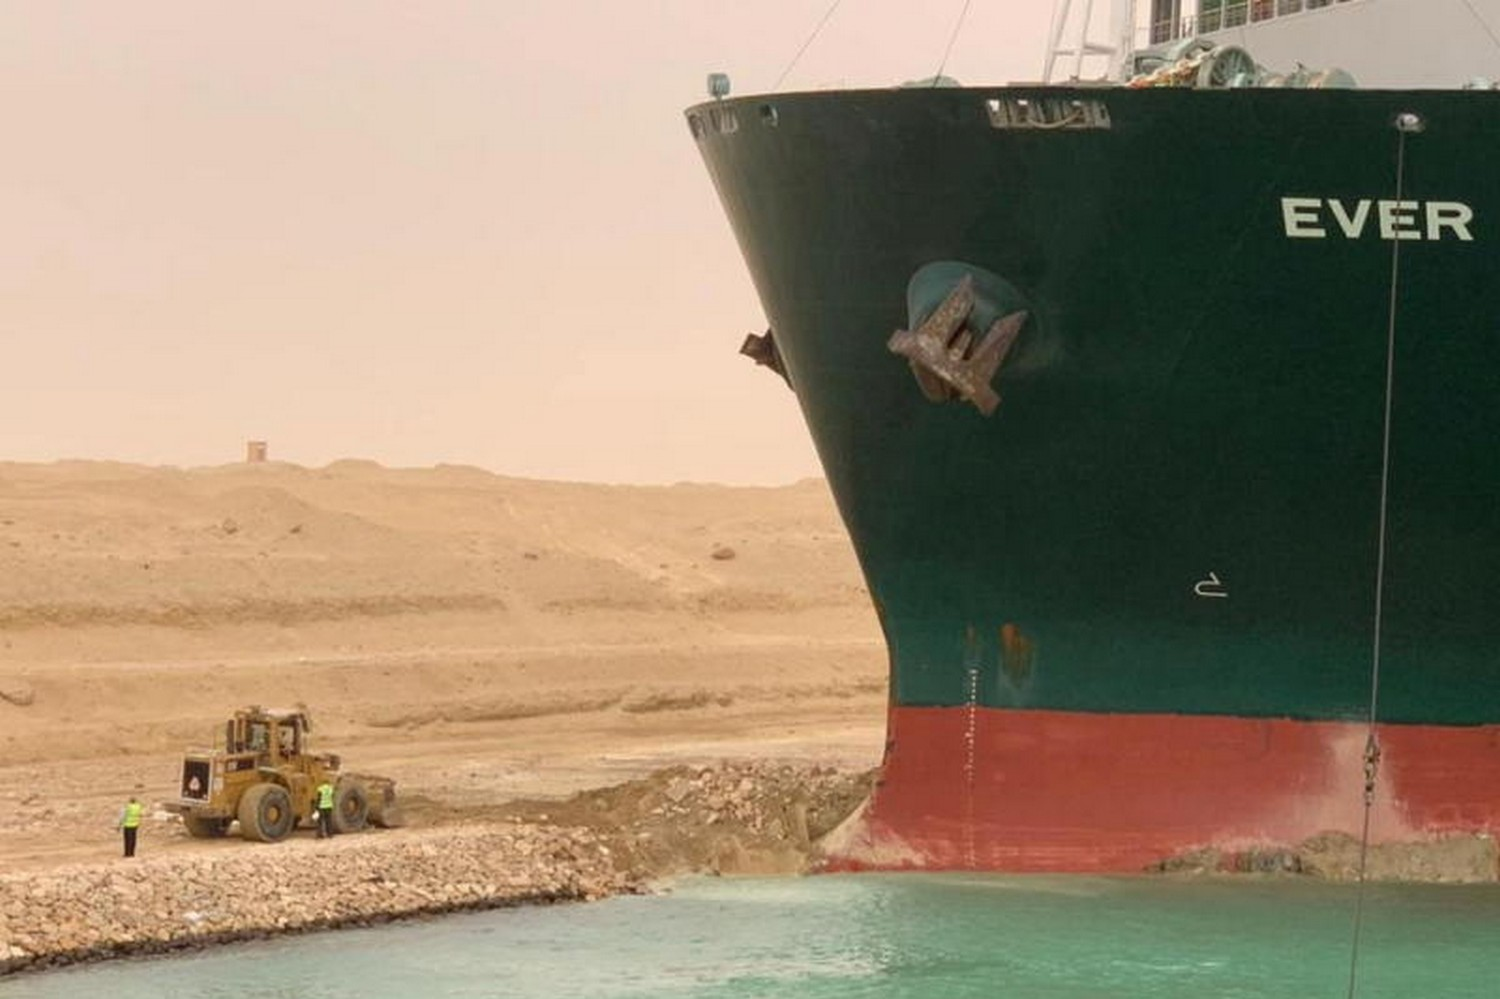 Workers are seen next to the bow of the huge container ship, lodged firmly in the bank of the Suez Canal. (Photo: Suez Canal Authority/Reuters)